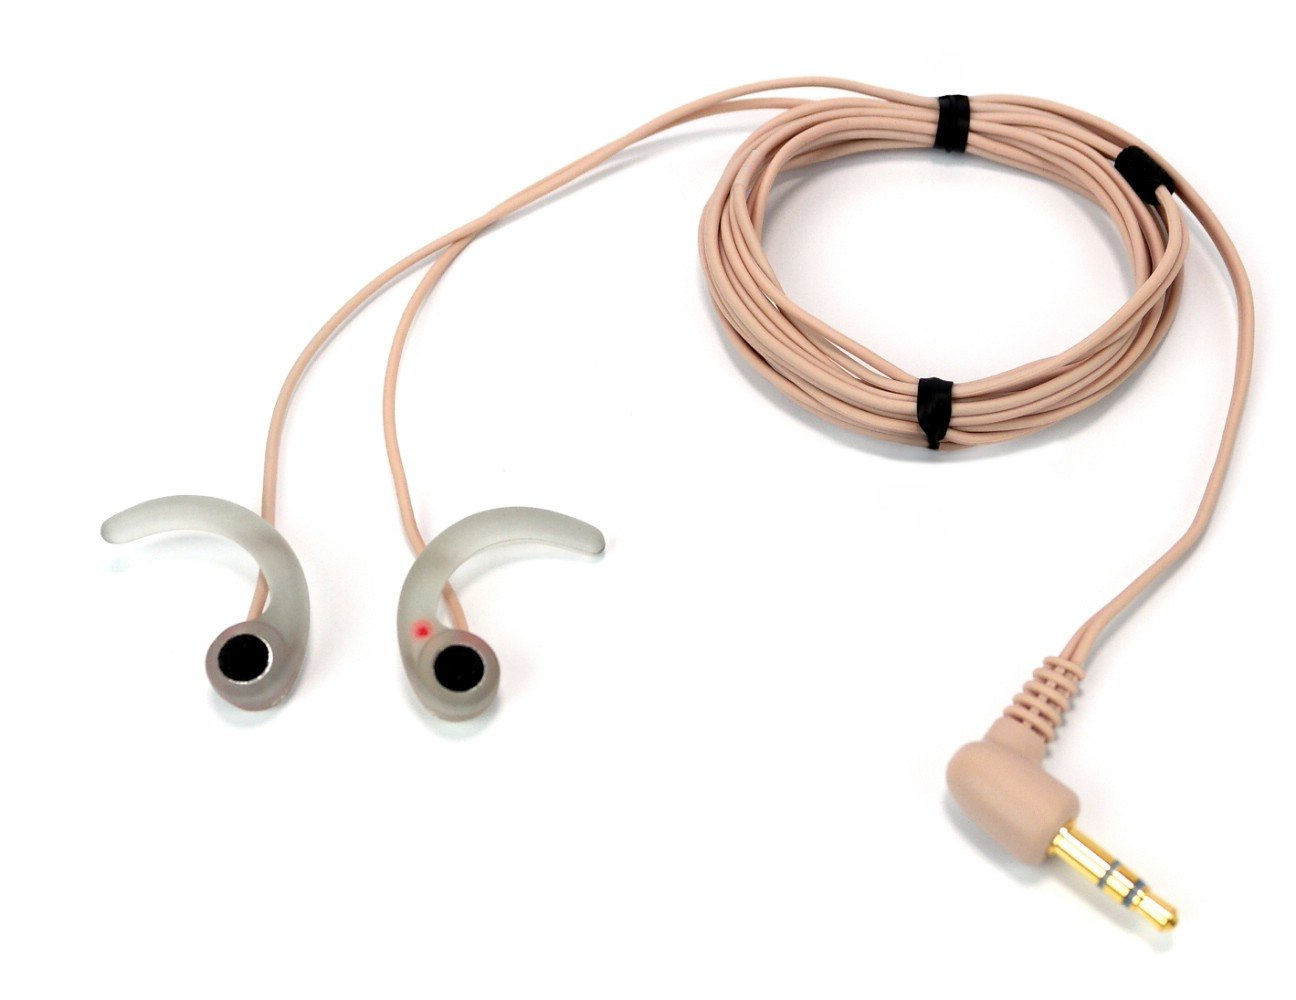 SP-TFB-2-13097 - High Sensitivity, Low-Noise In-Ear Binaurals microphones w/Windscreens, Beige cables by Sound Professionals (Image #1)